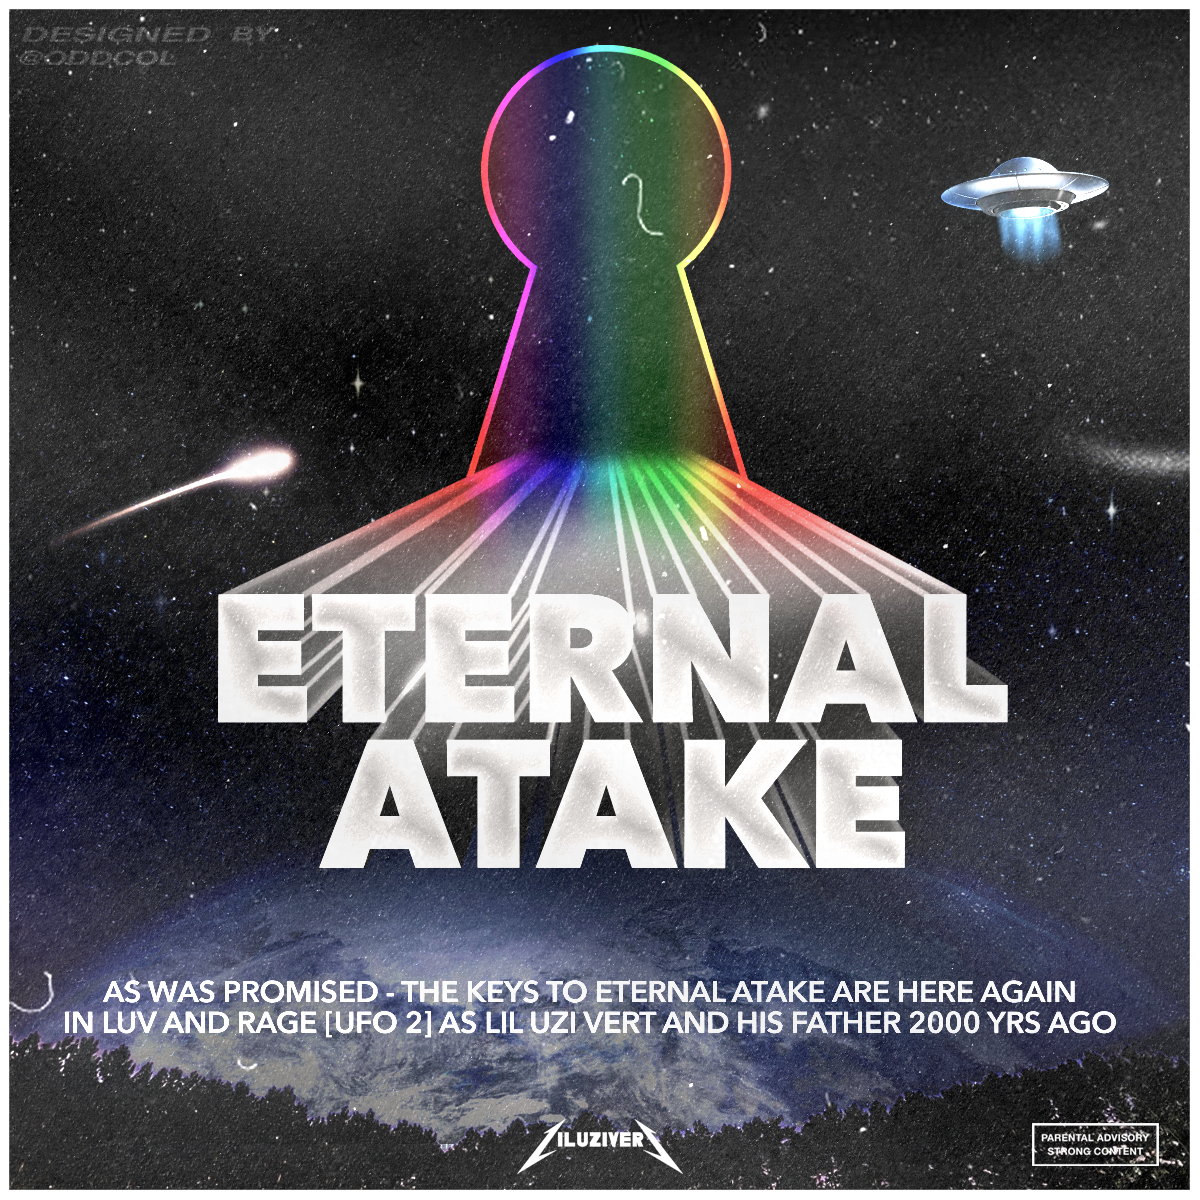 Eternal Atake Wallpapers Posted By Ryan Sellers